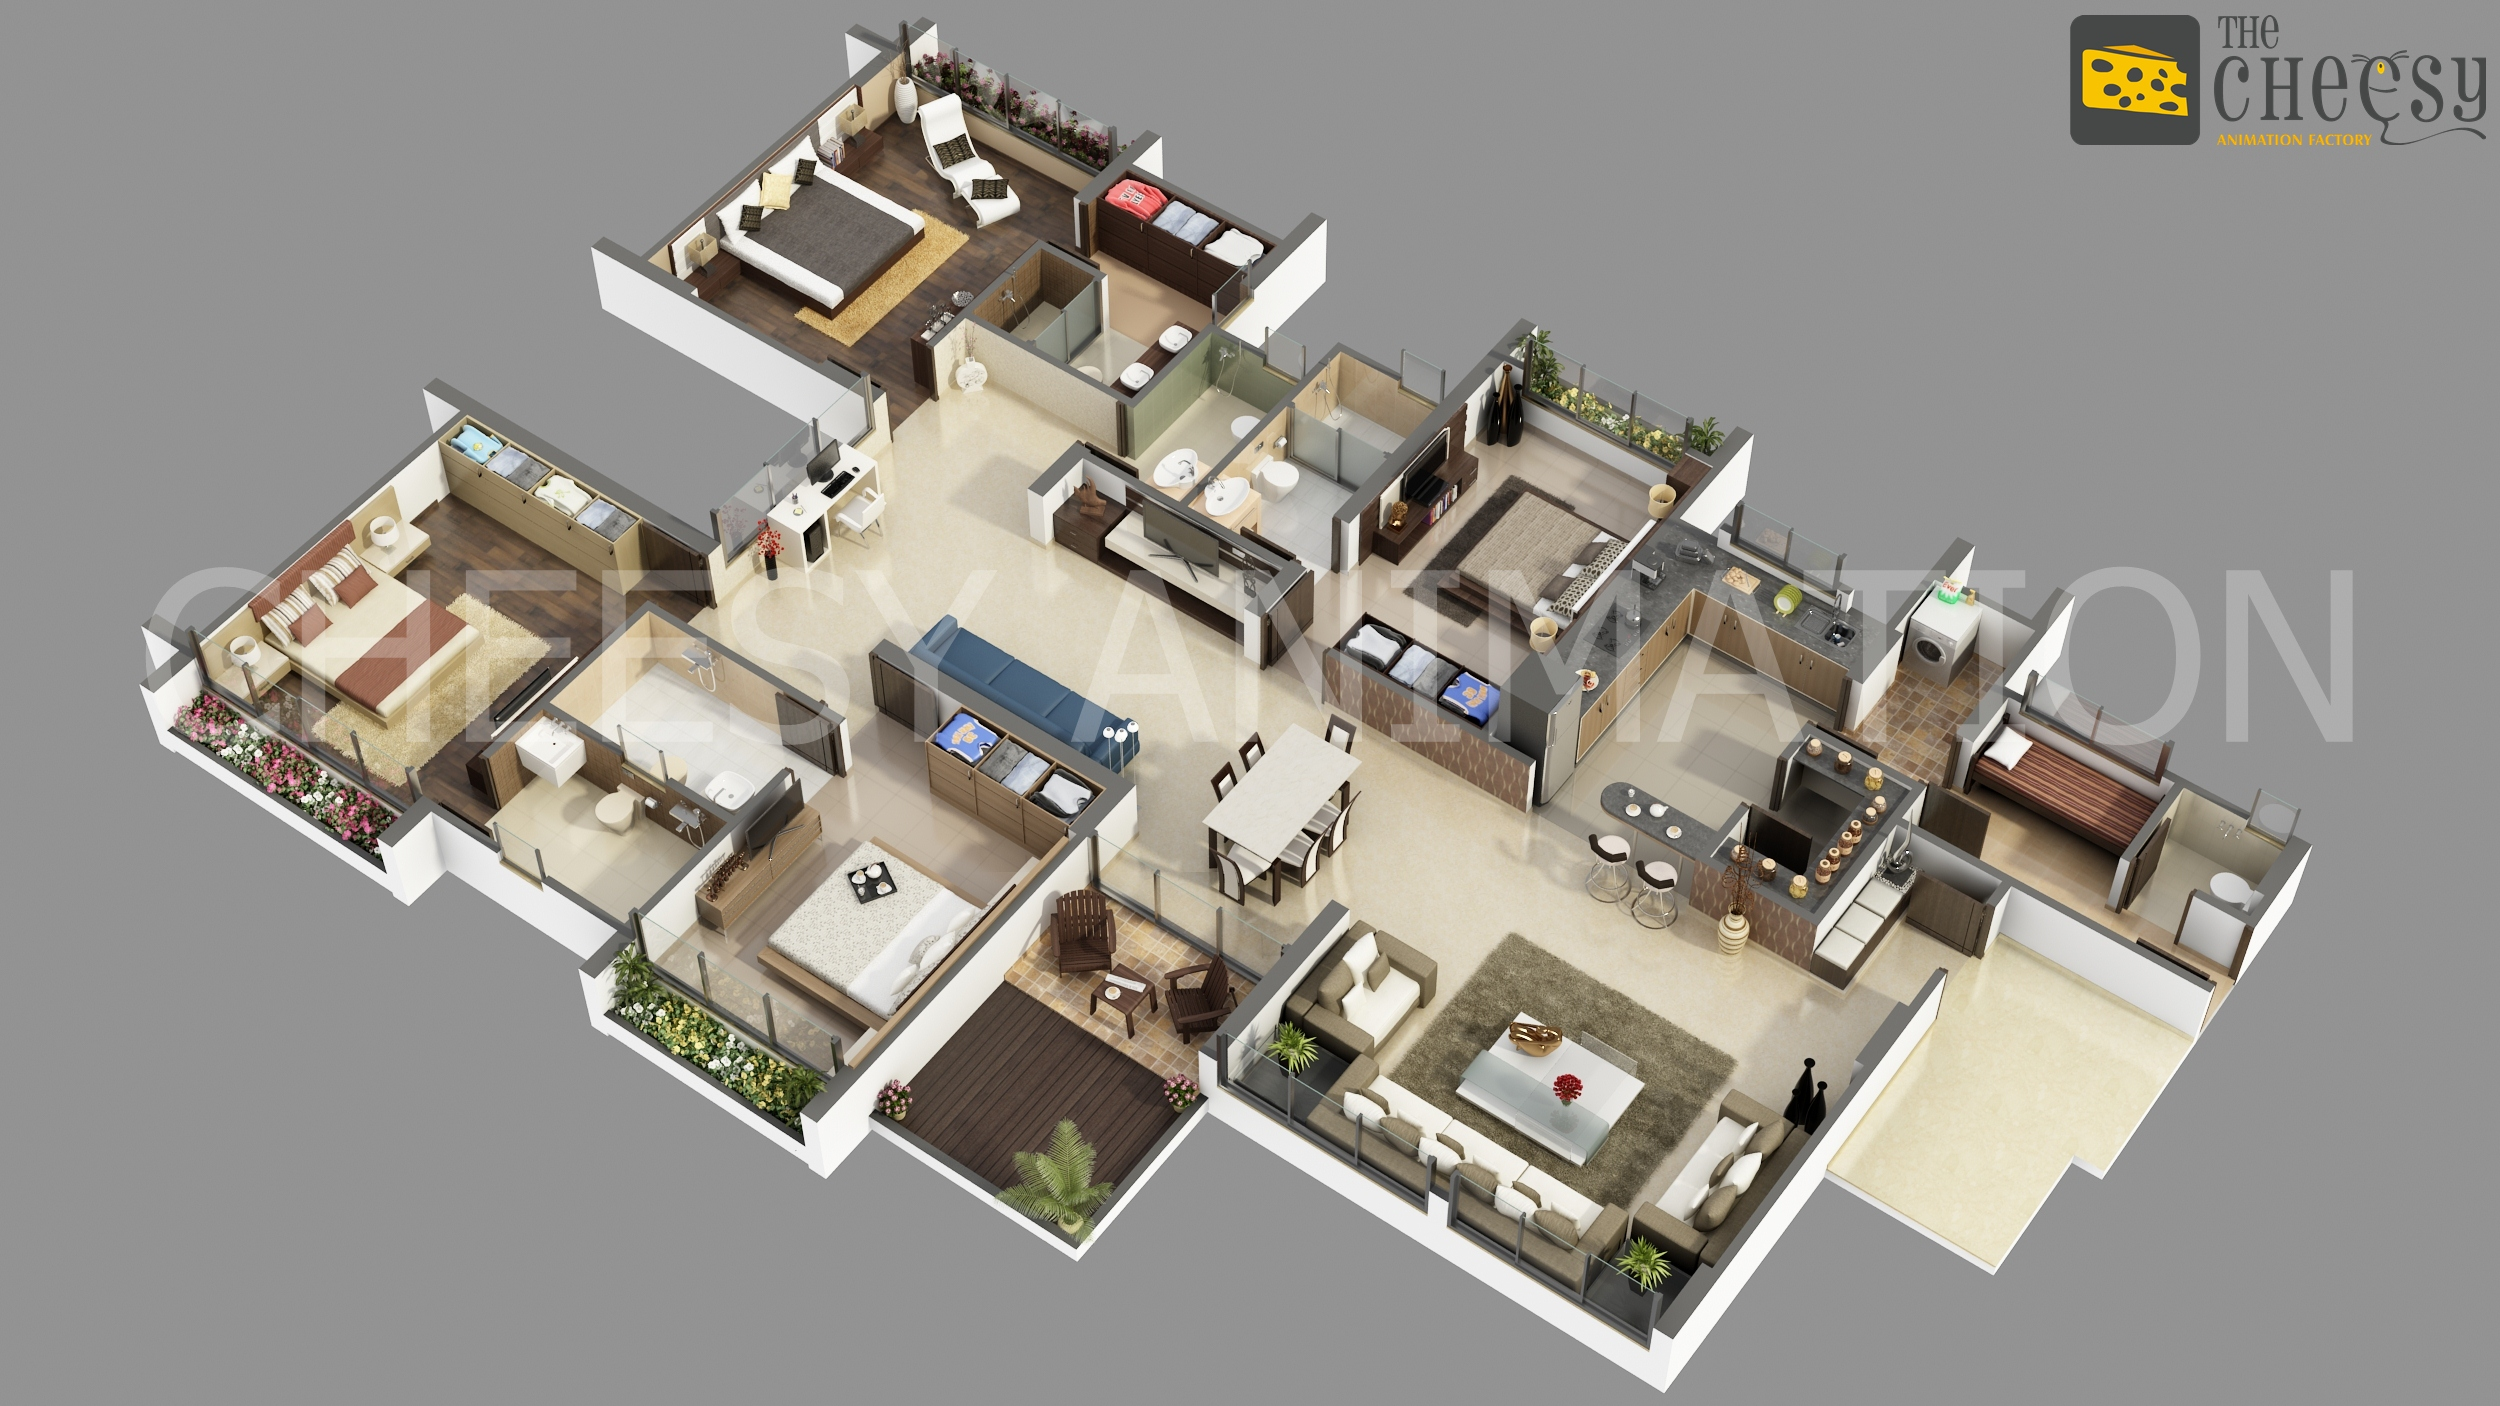 3d Floor Plan Rendering An Effective Way To Have Realistic View Of Your Proposed Building